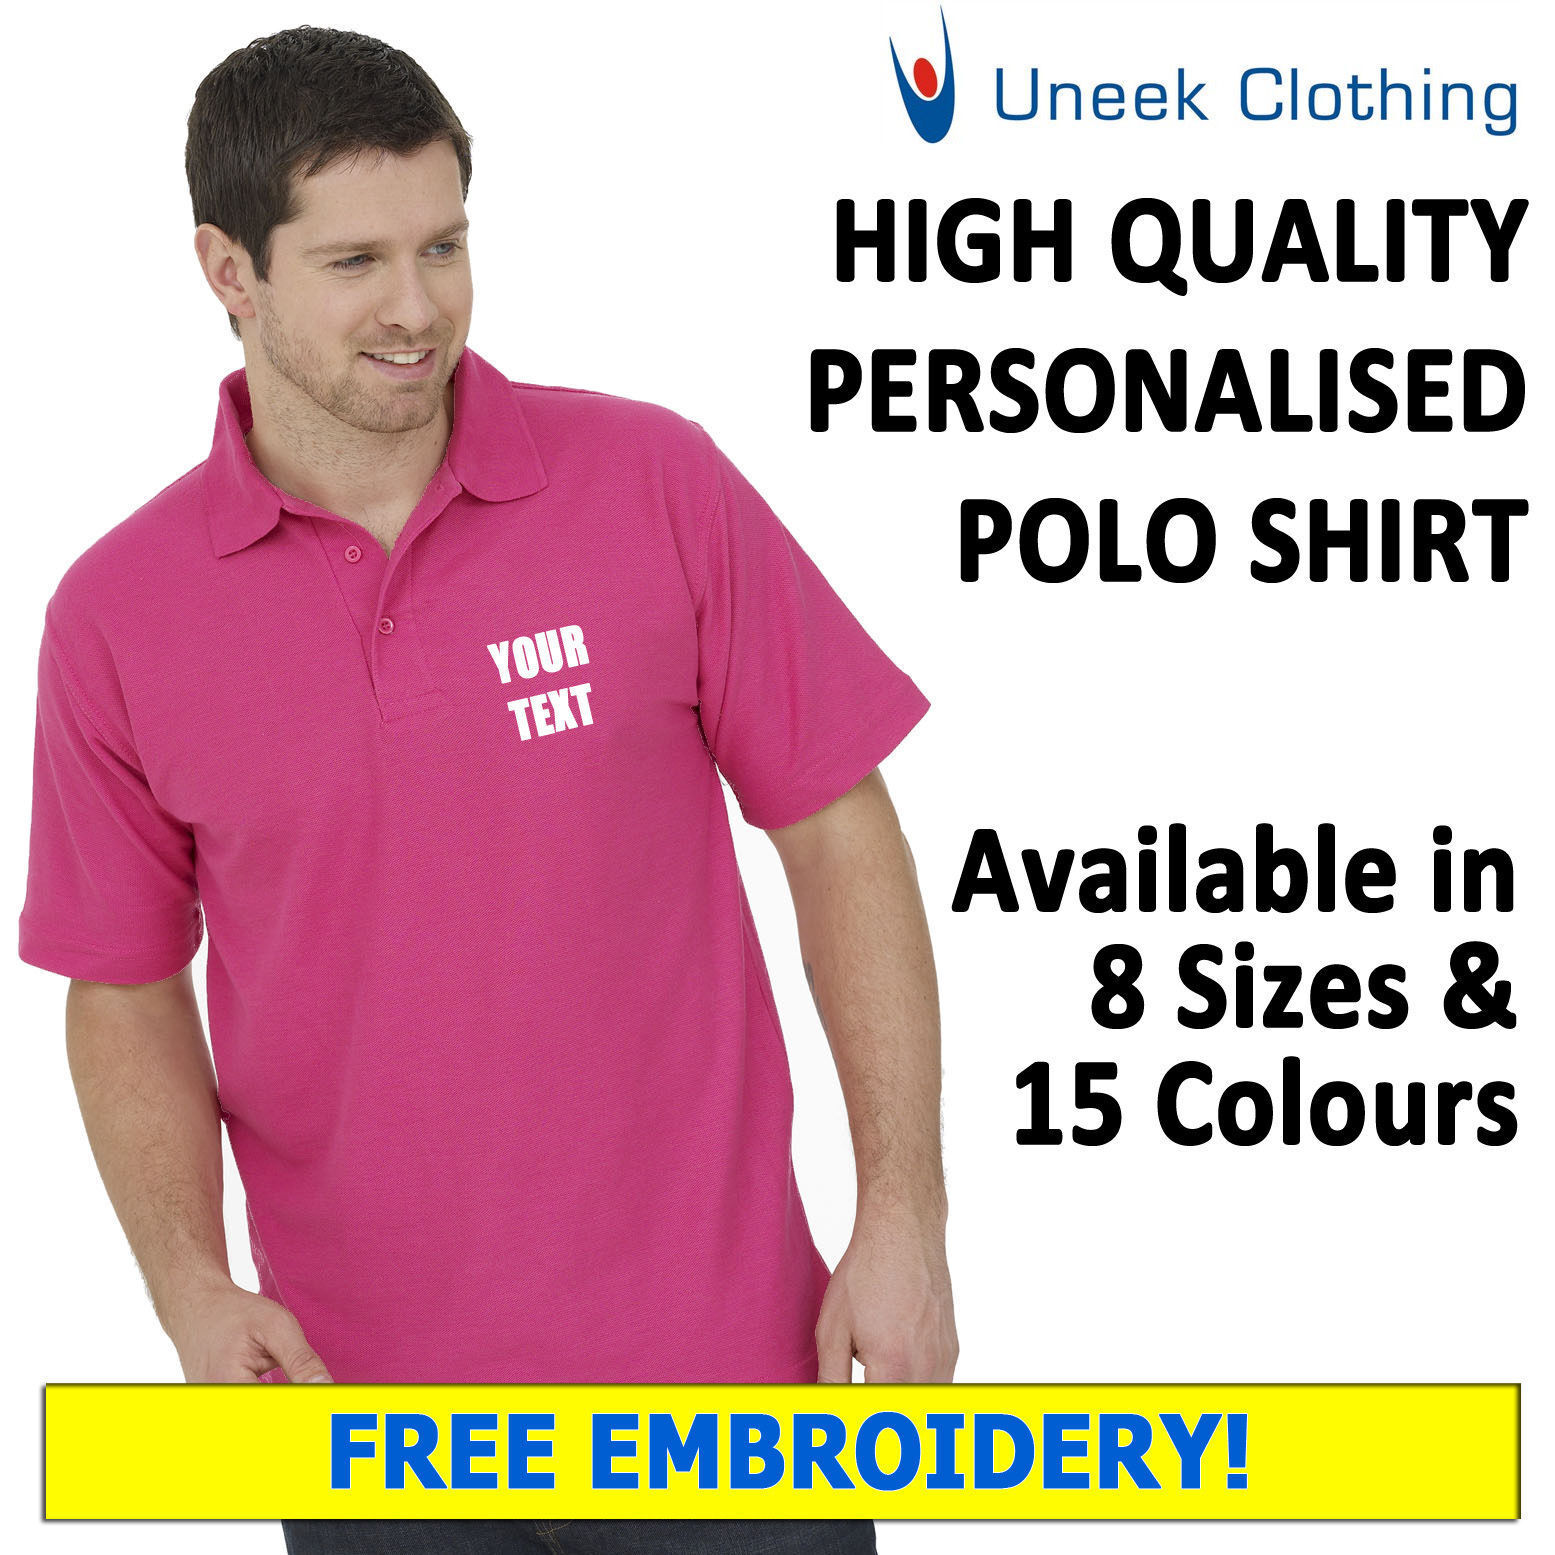 NEW 10 x Personalised Uneek EmbroideROT Polo Shirts, Workwear, Customised Polos